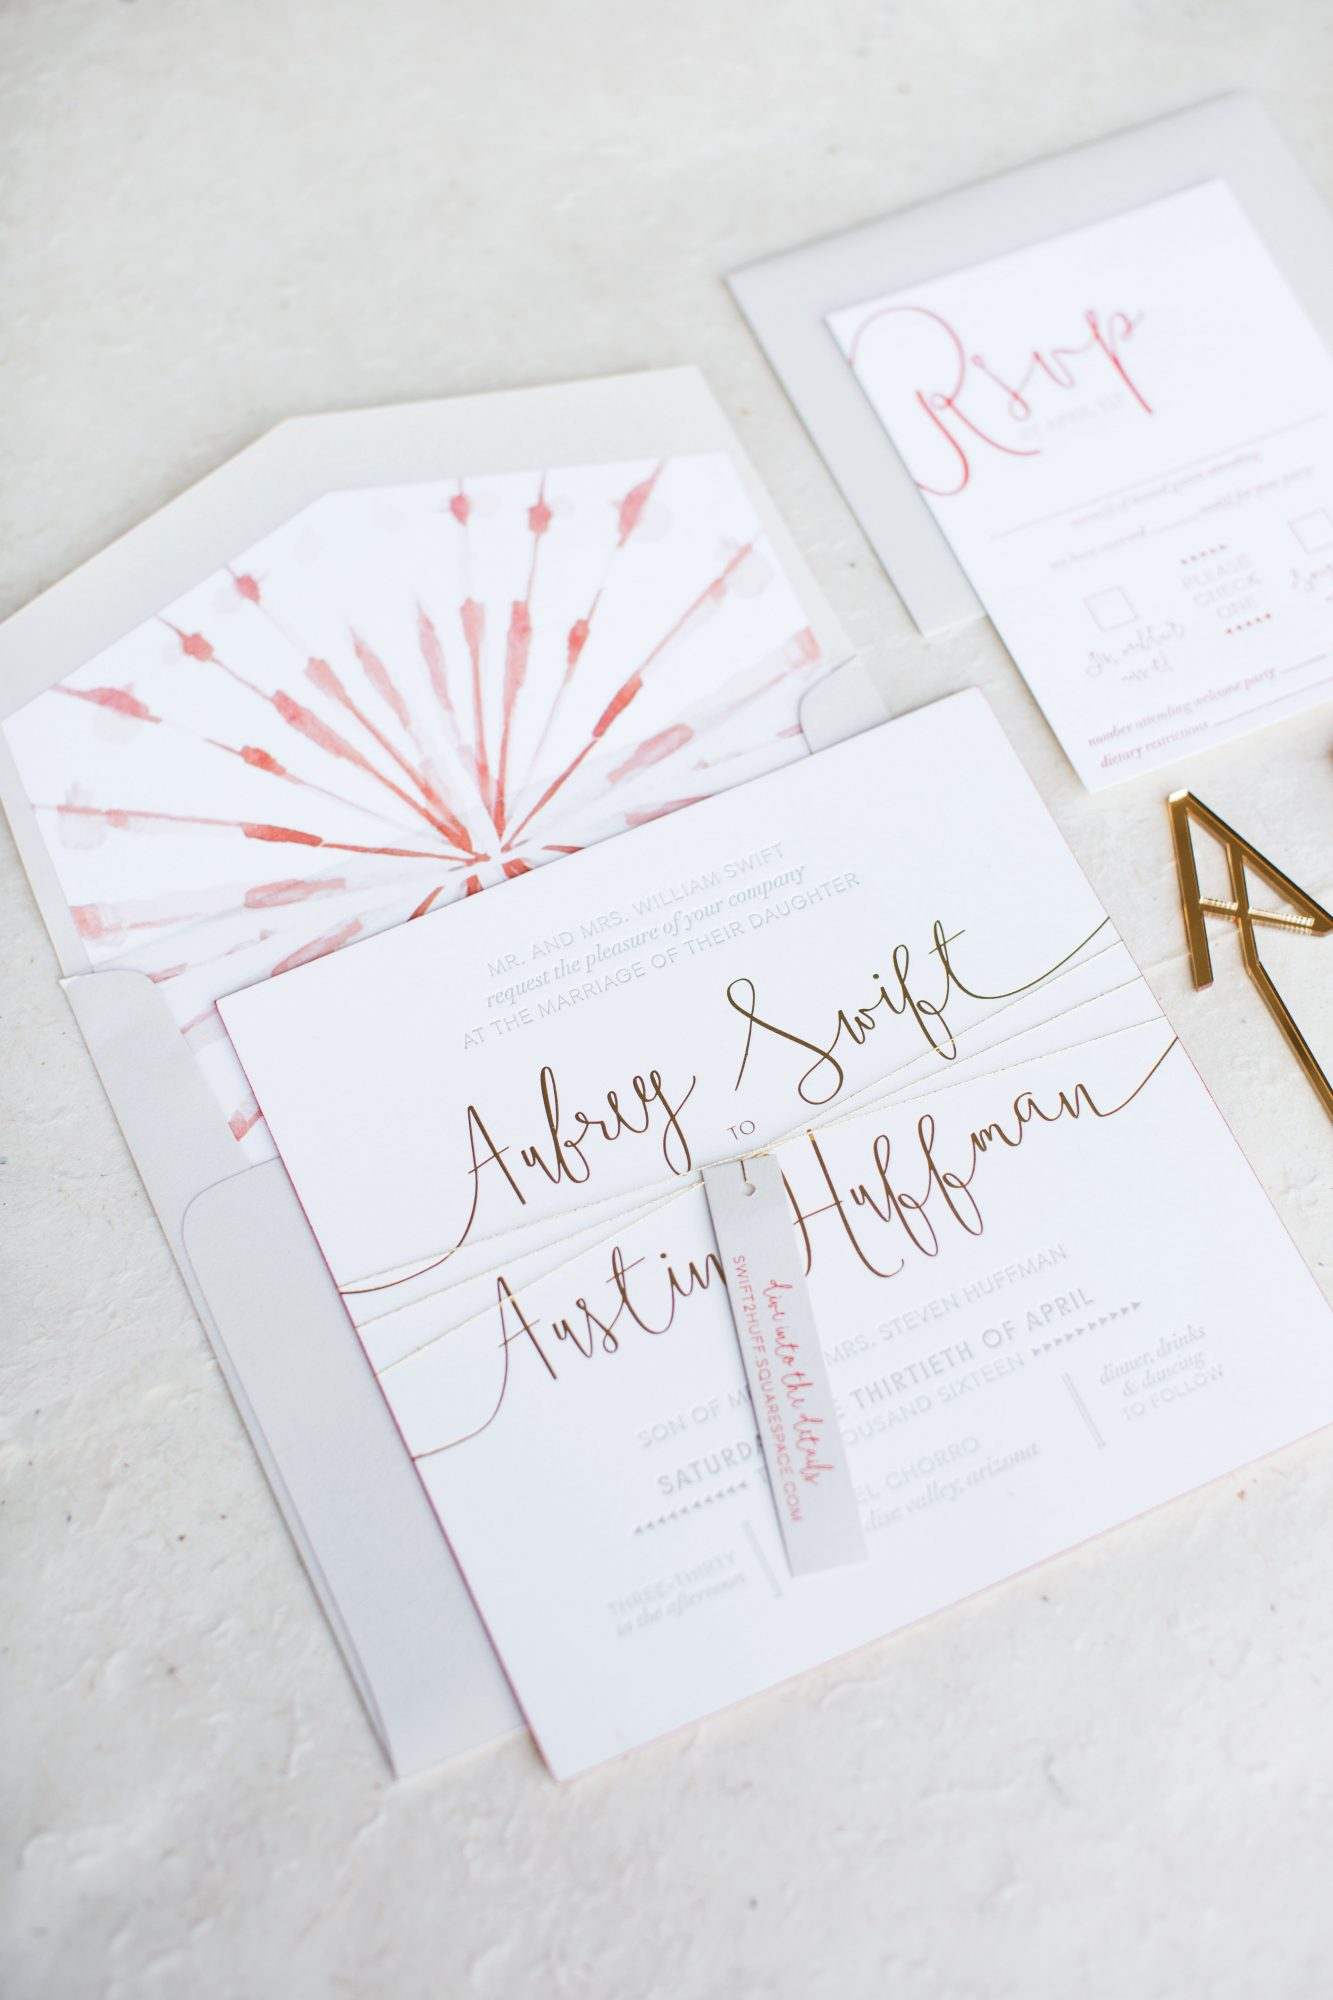 aubrey austin wedding stationery